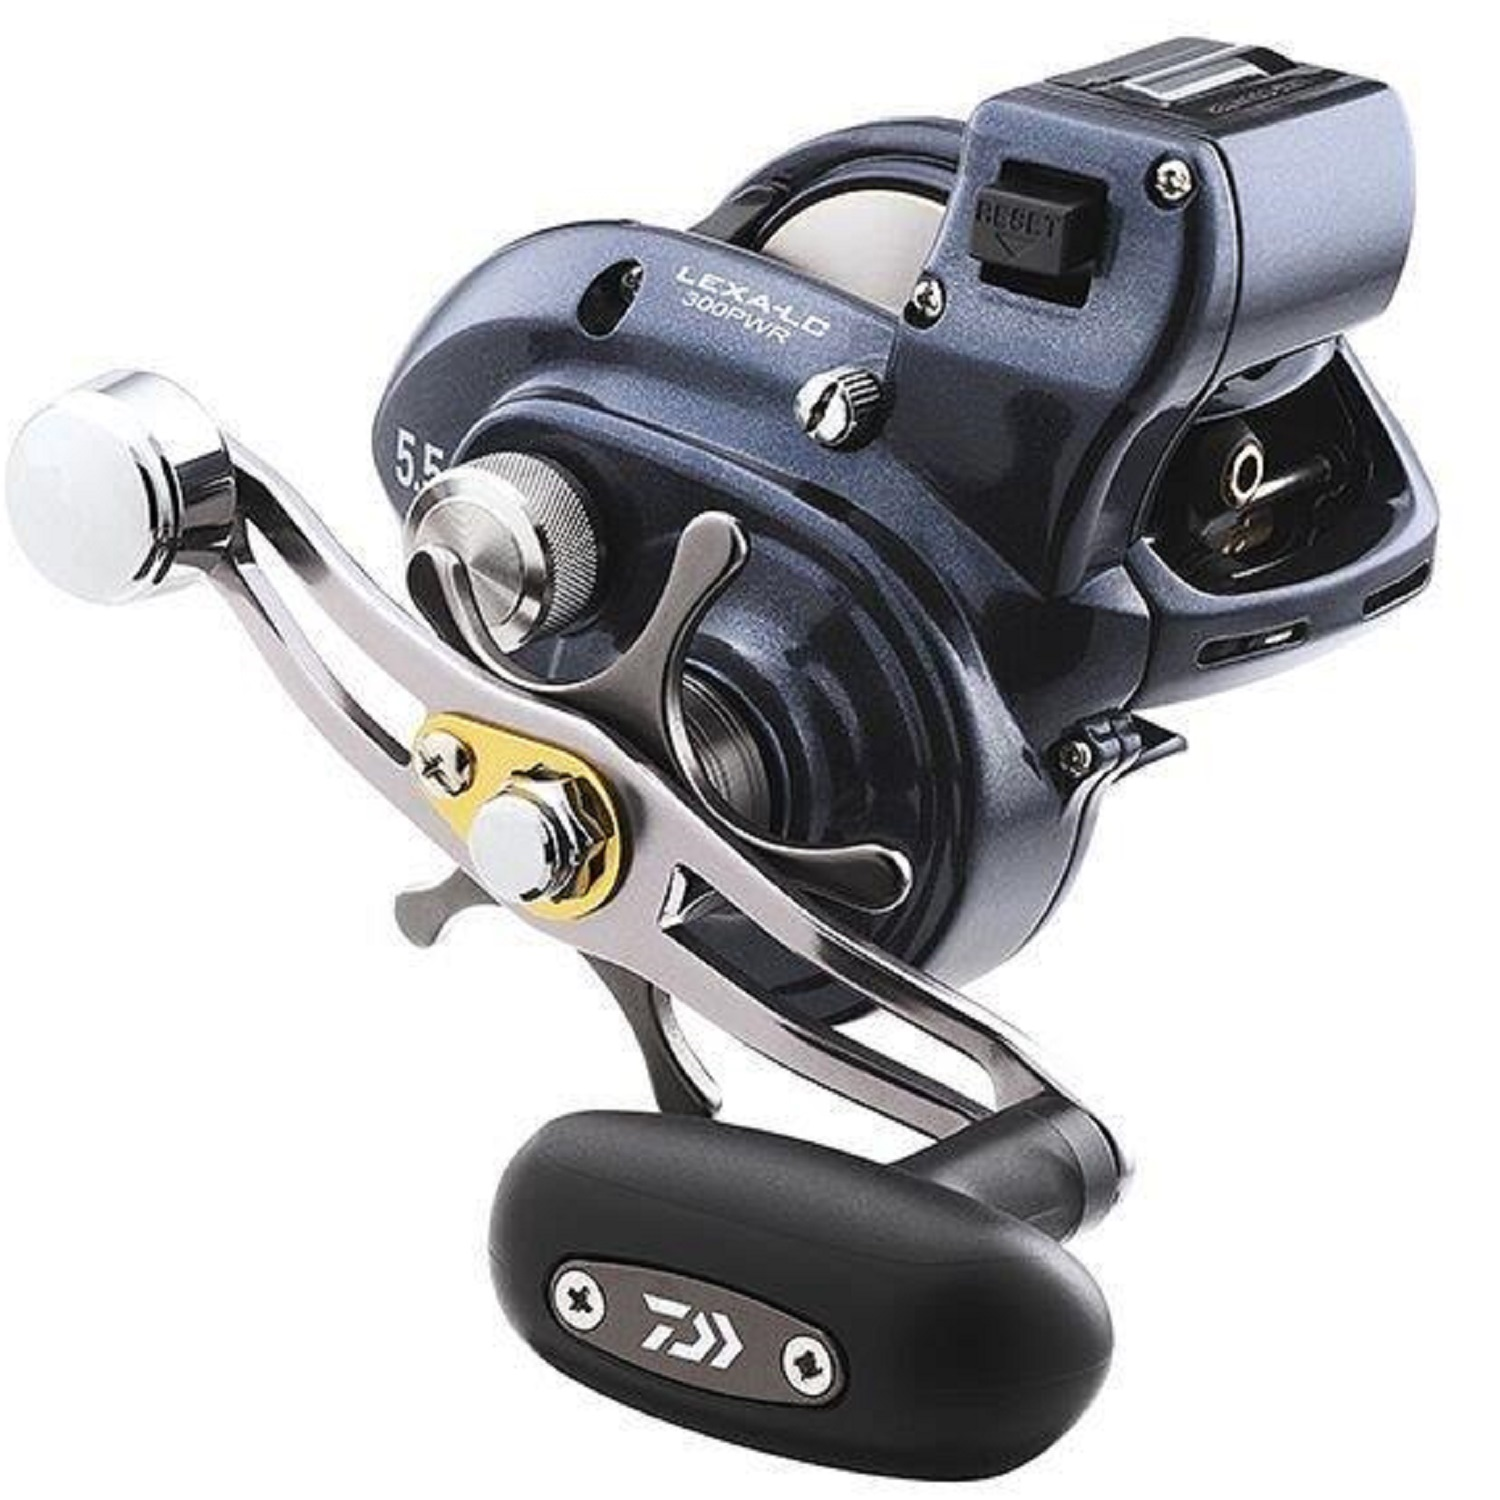 Daiwa Lexa Line LC300 Counter Reel 5.5:1 Gear Ratio, 7 Bearings, 22 lb Max Drag, Right Hand